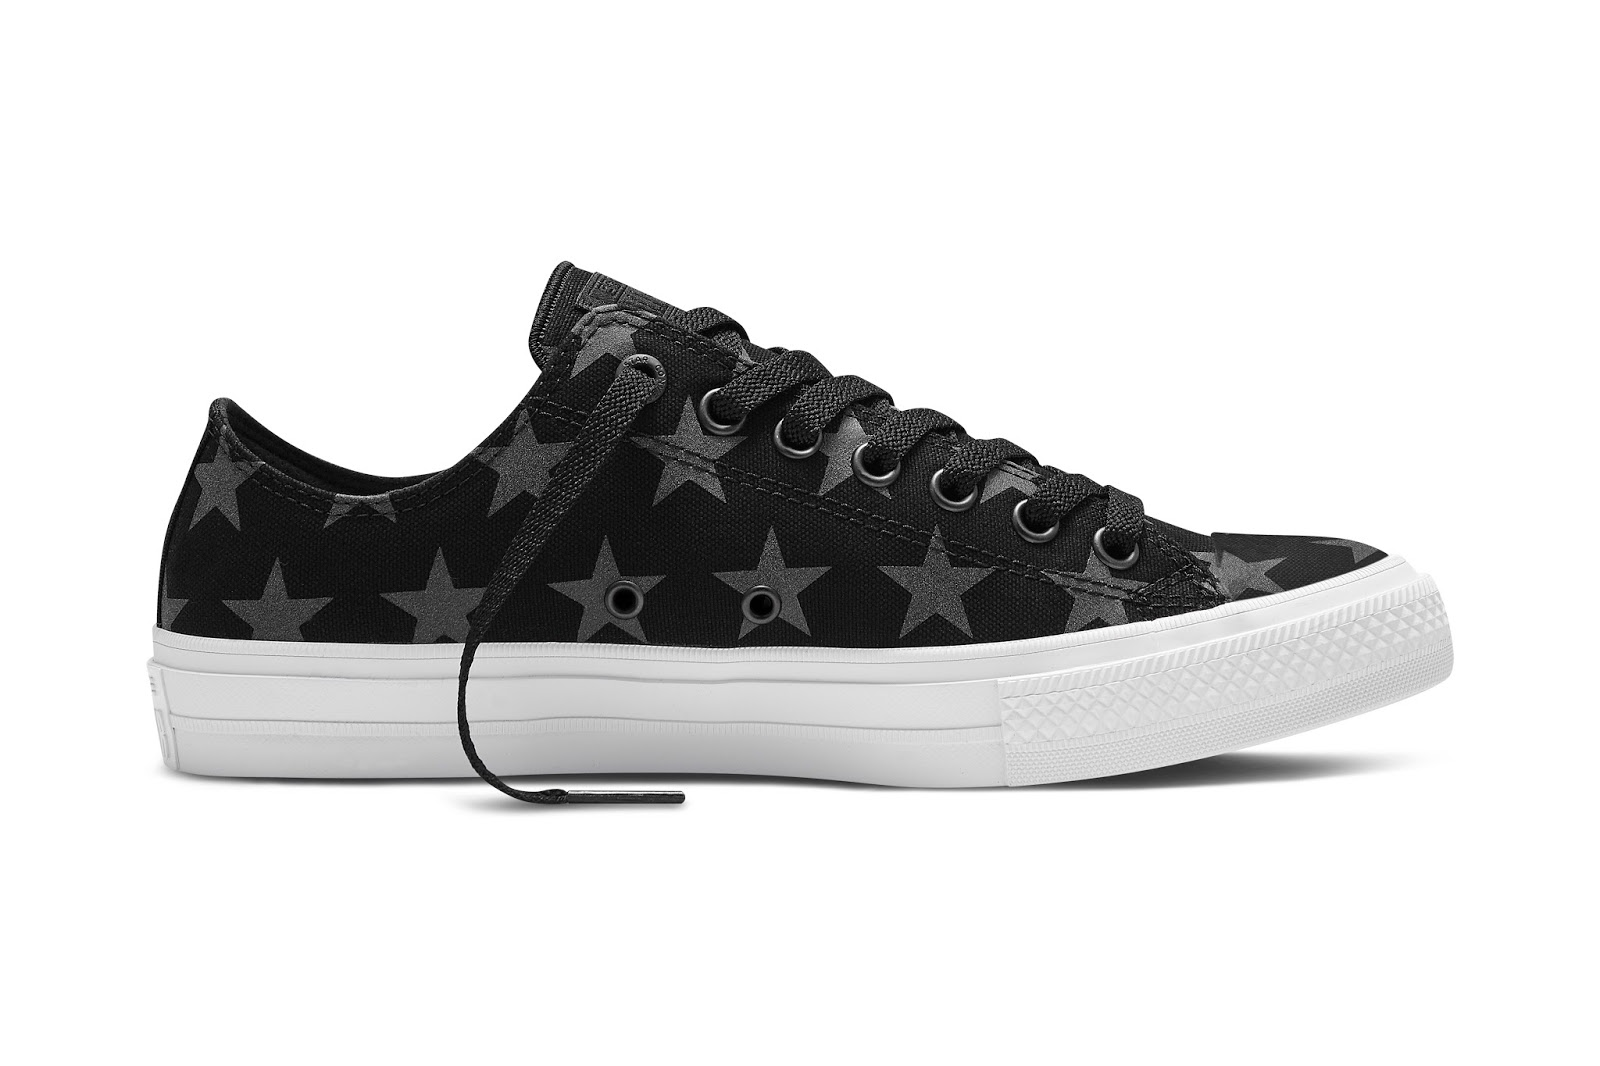 What do you guys think of the new Converse Chuck Taylor All Star ll Reflective  Print Collection  Definitely a cool idea! Below are some pics from the  Spring ... 0324af554